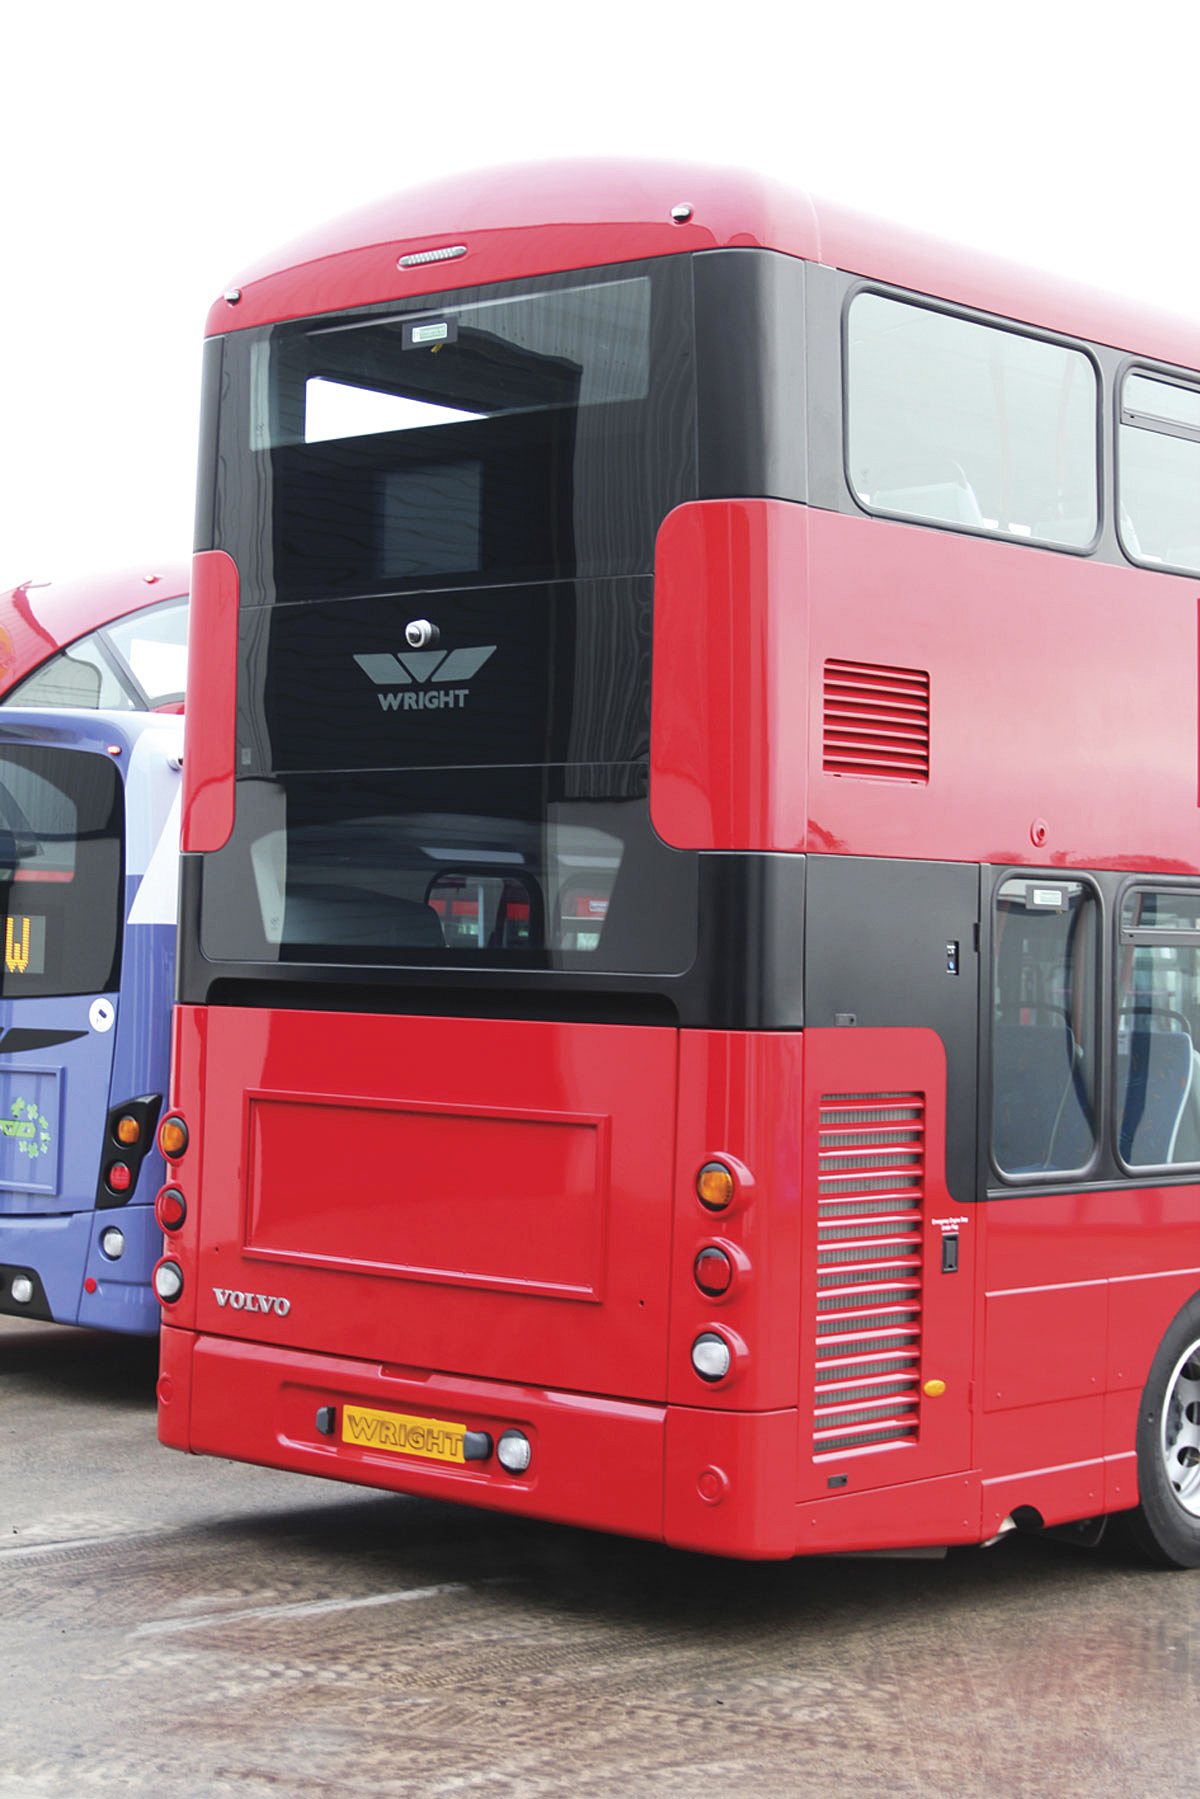 Daimler engines as Wrightbus targets Euro growth - Page 2 of 5 - Bus & Coach Buyer